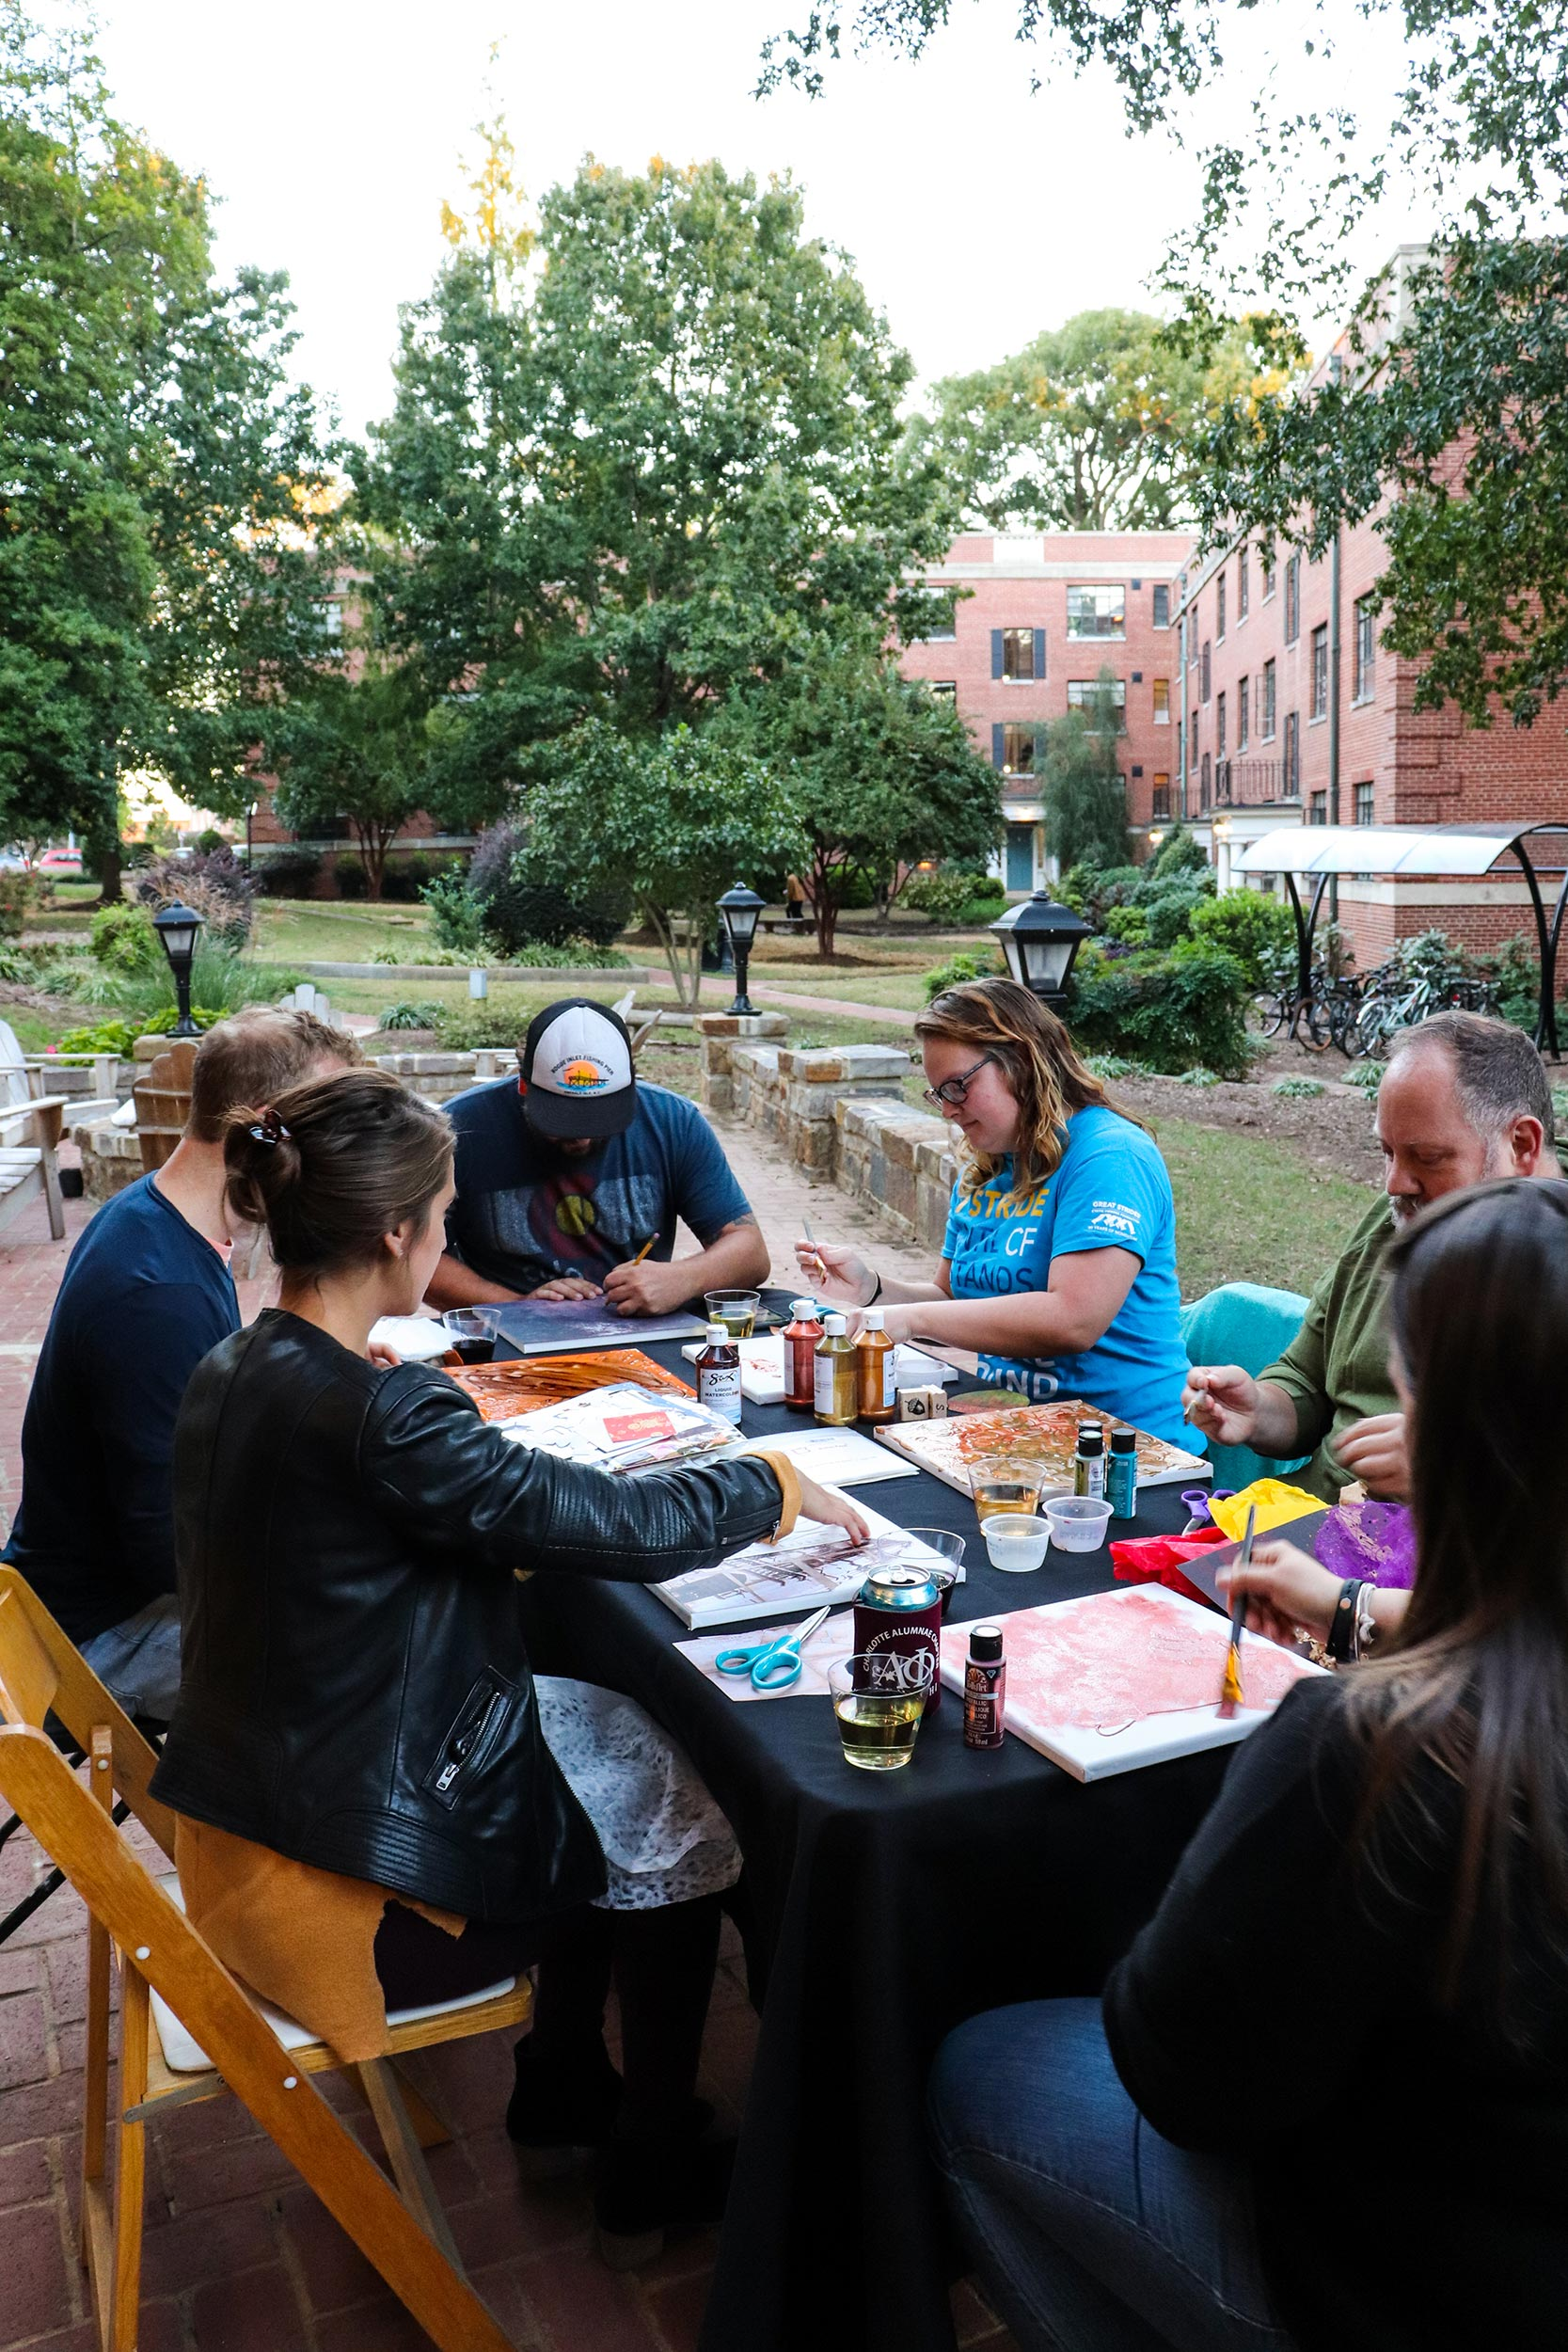 Adult art students get creative outdoors using paint and collage on canvas.